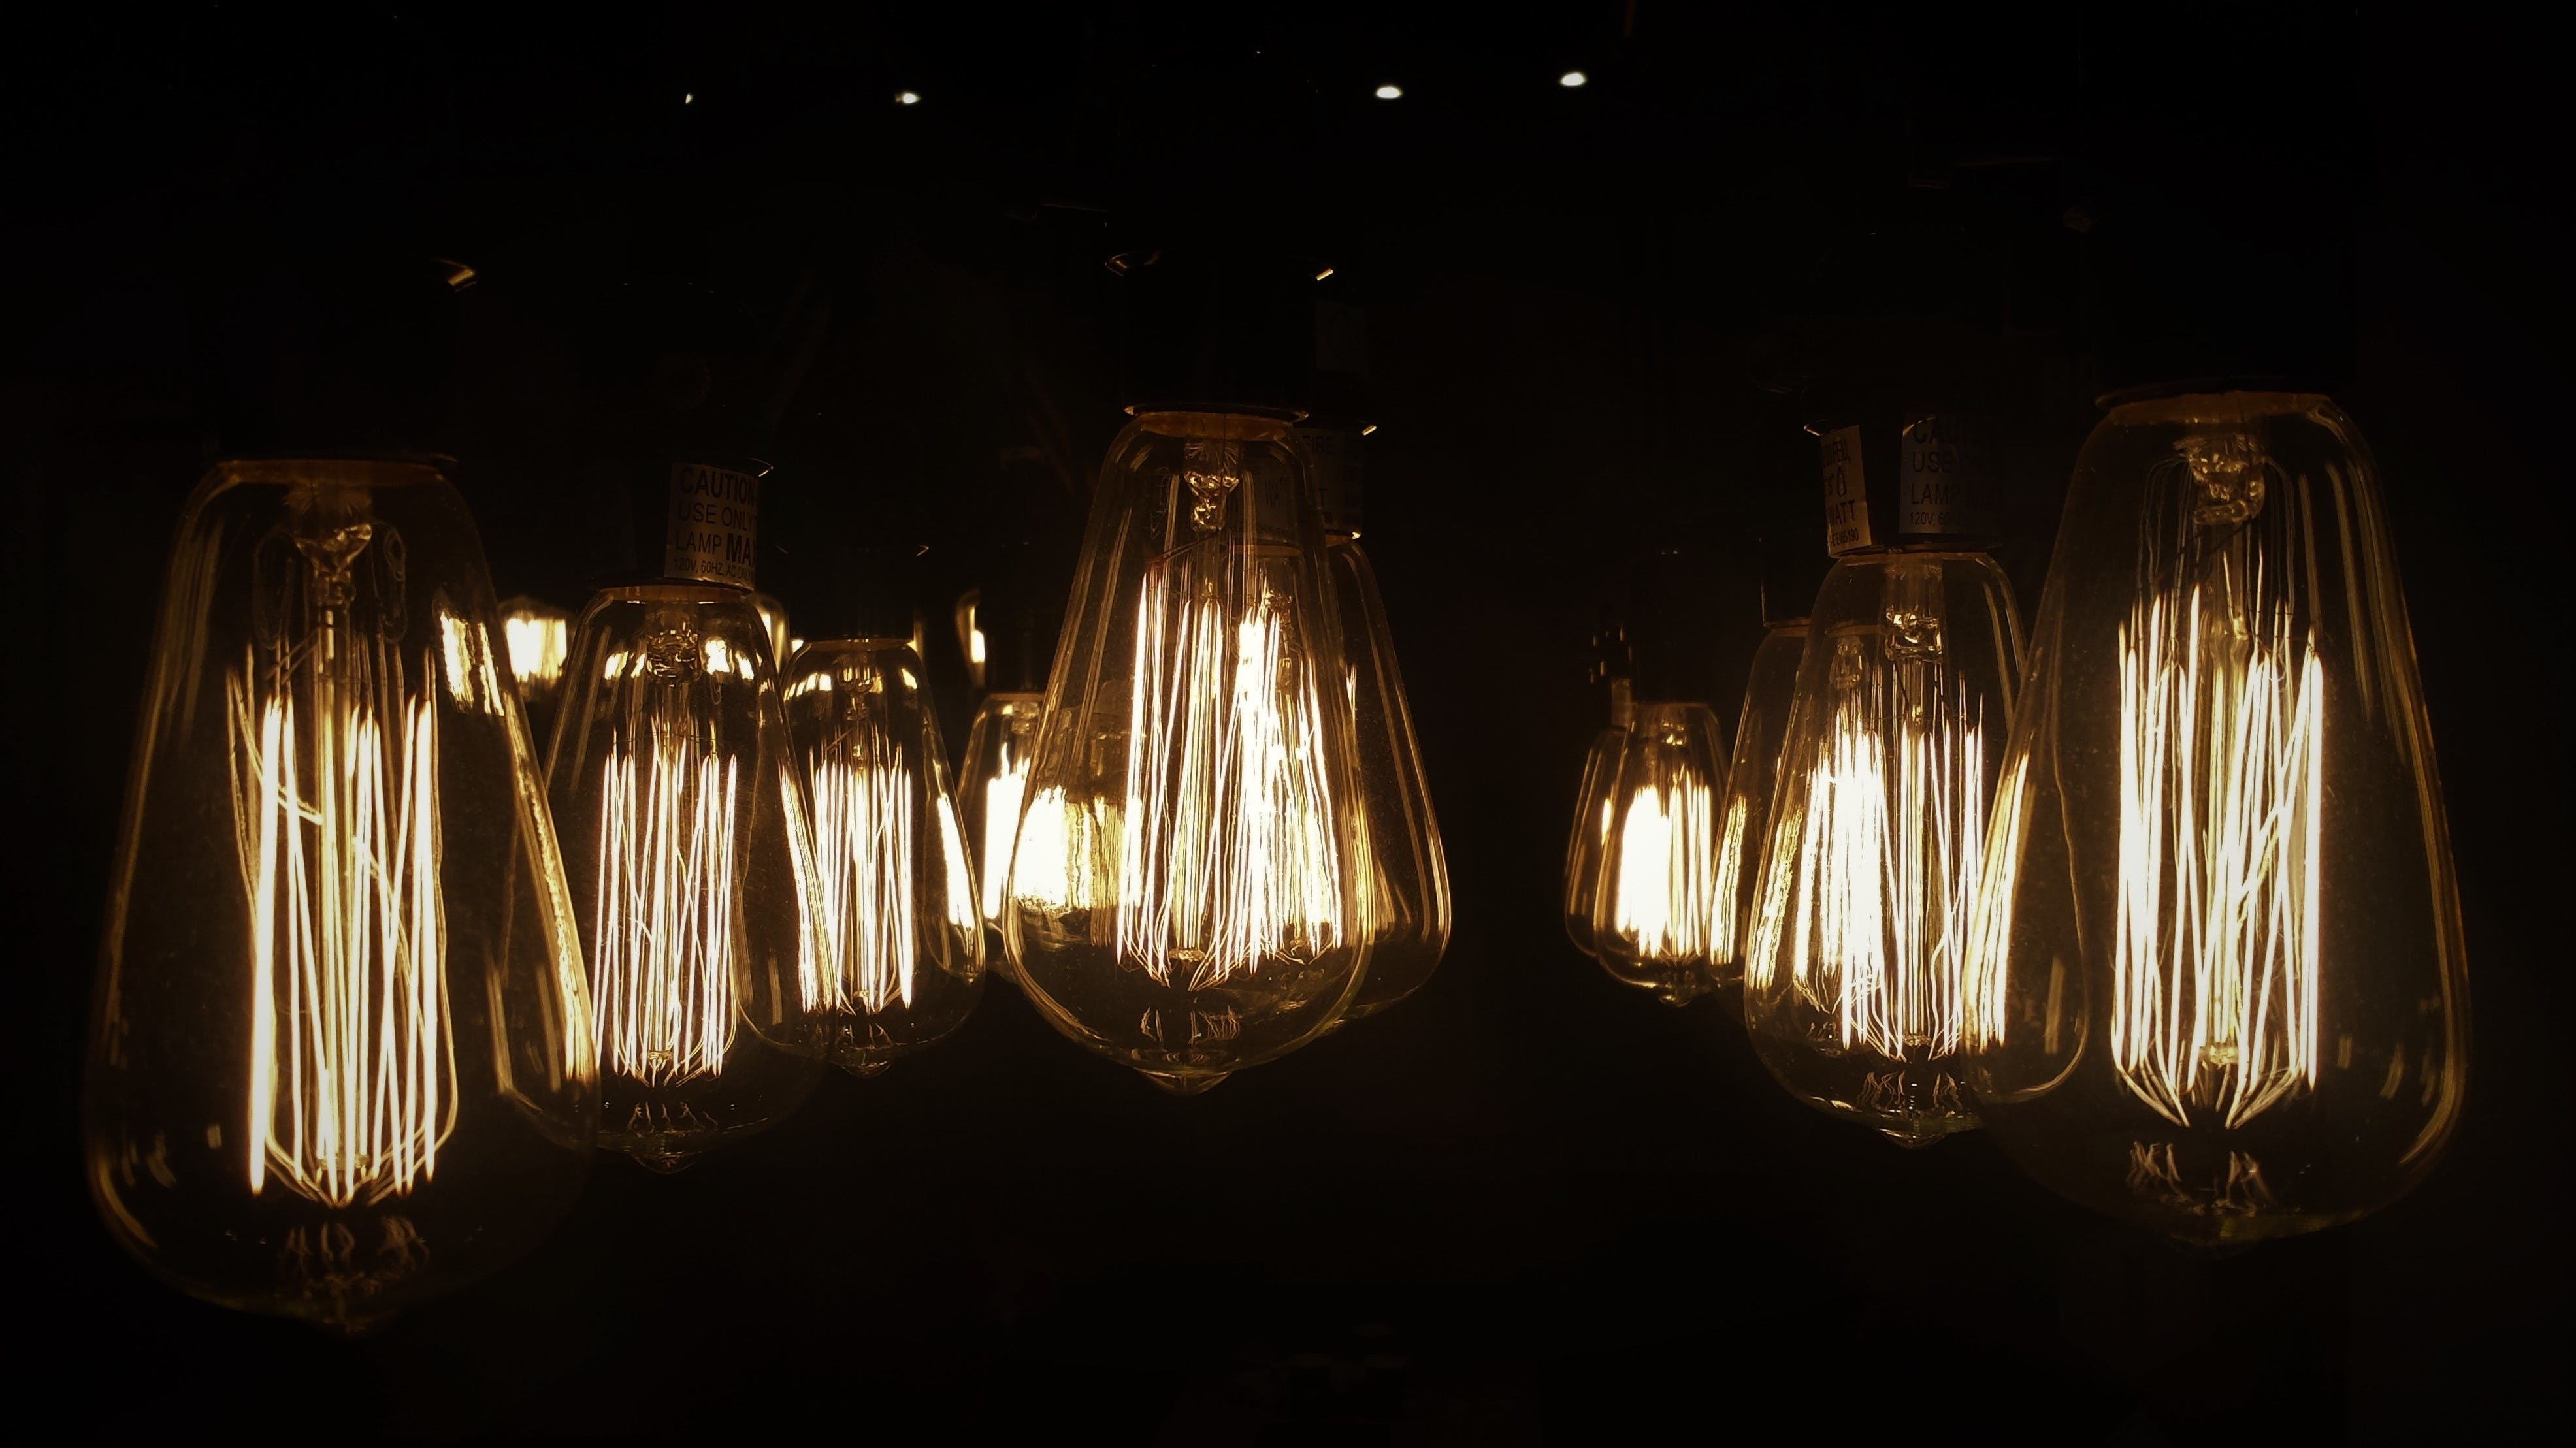 Light Bulbs during Night Time